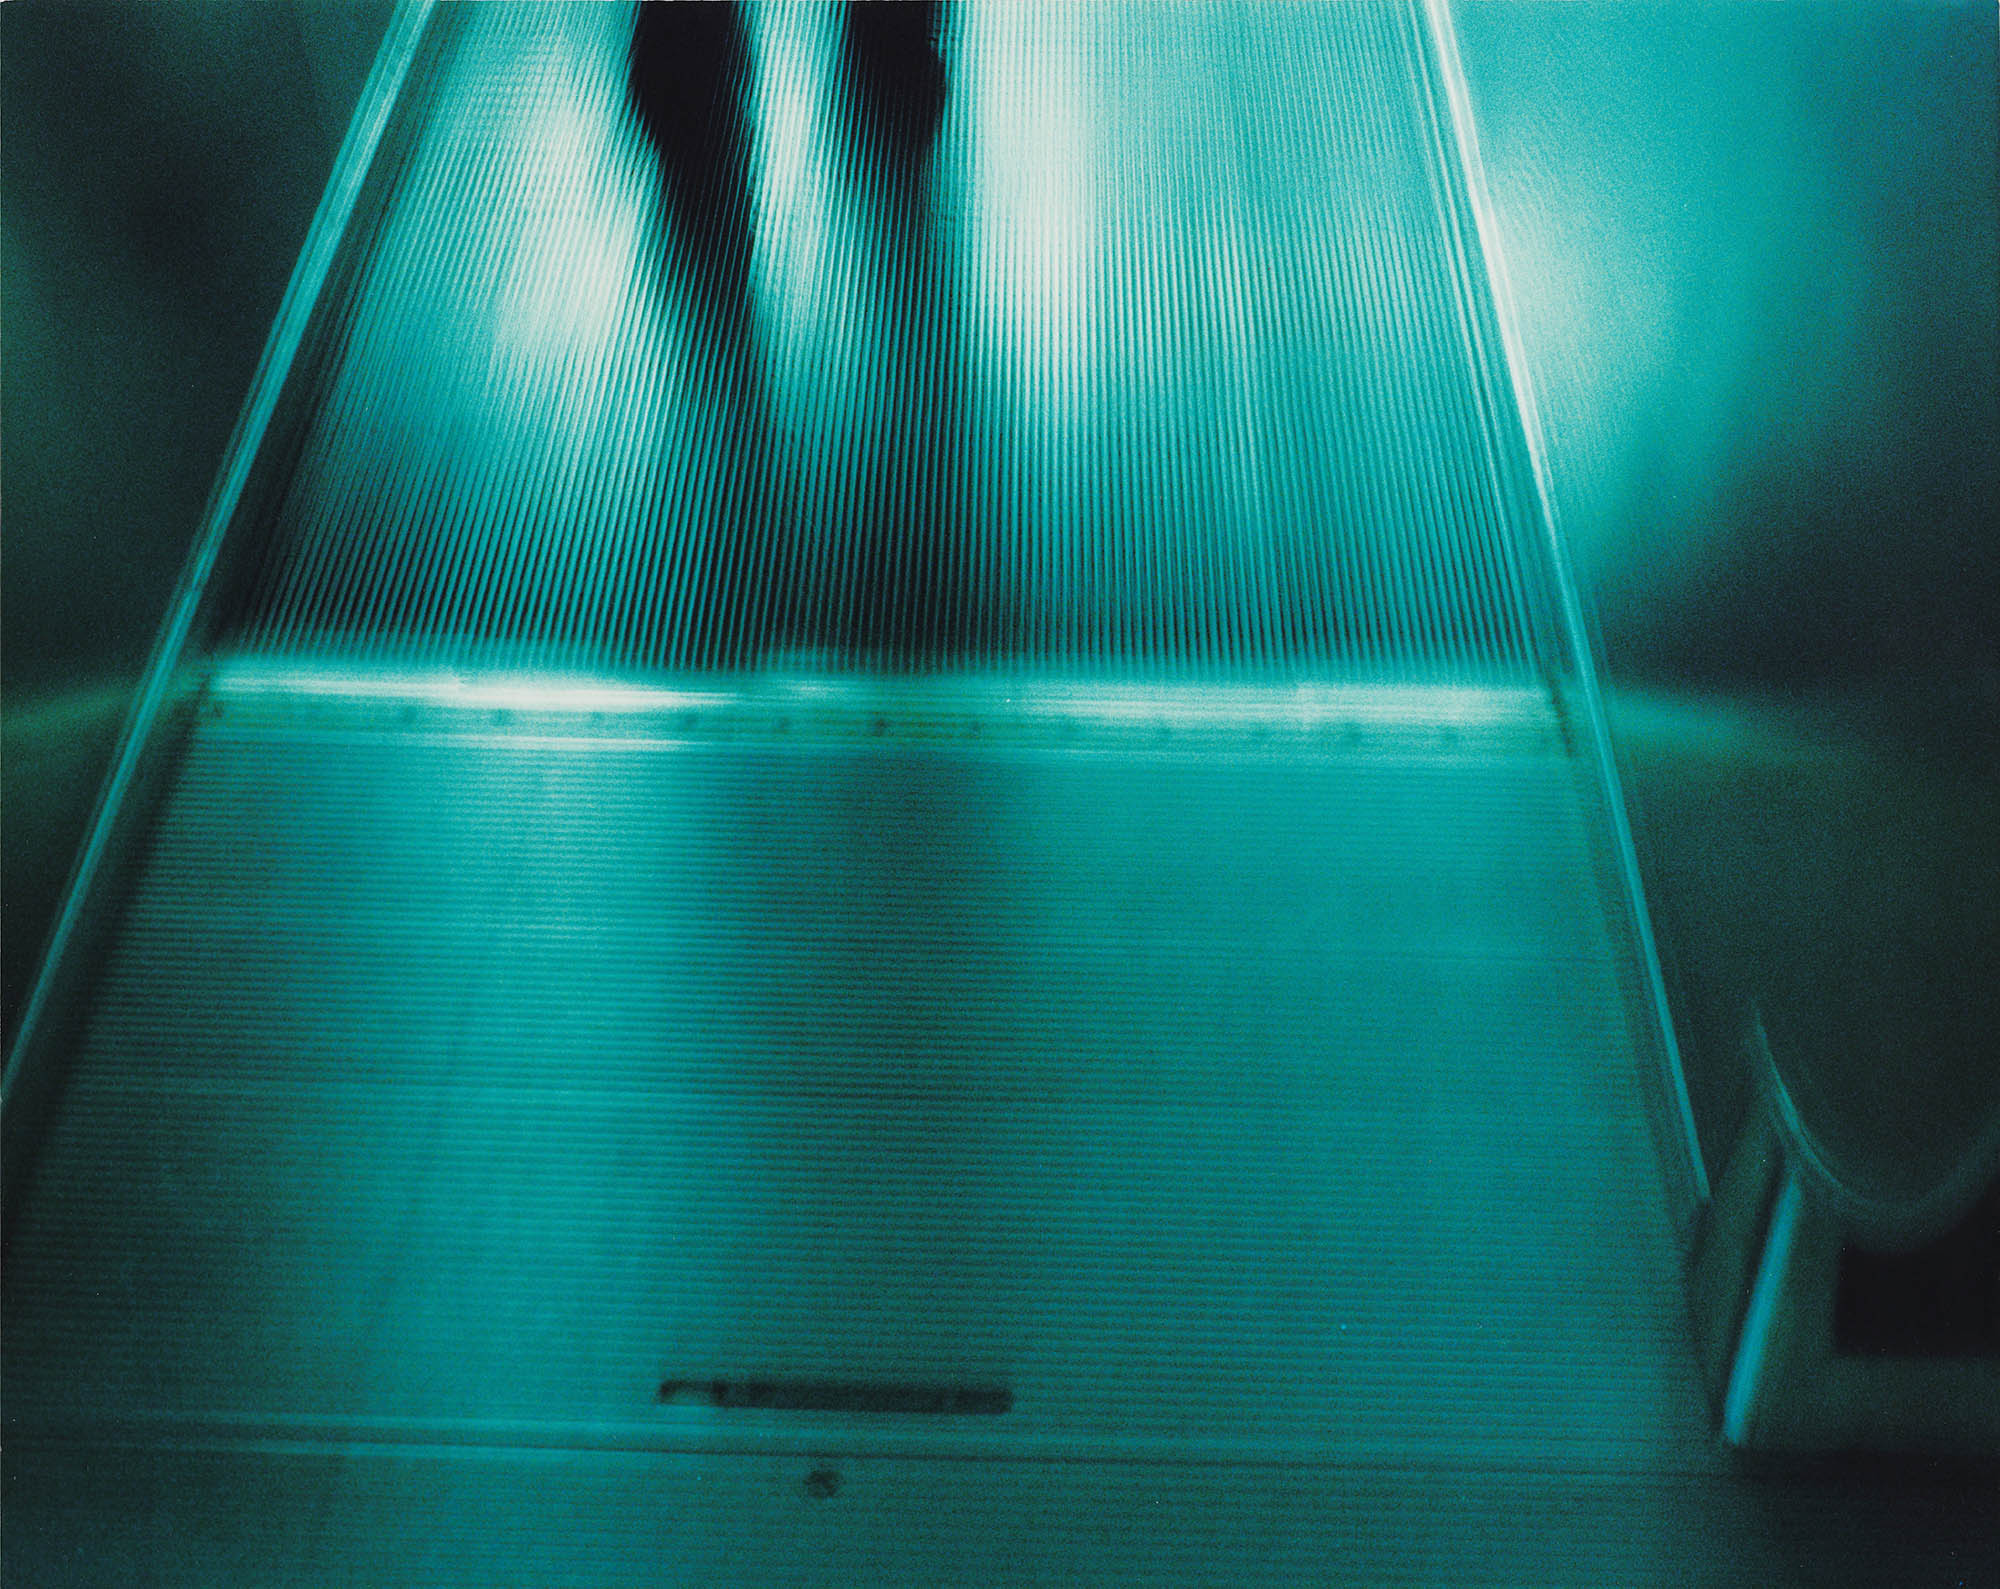 Adler Guerrier, Untitled (Airport), 2000